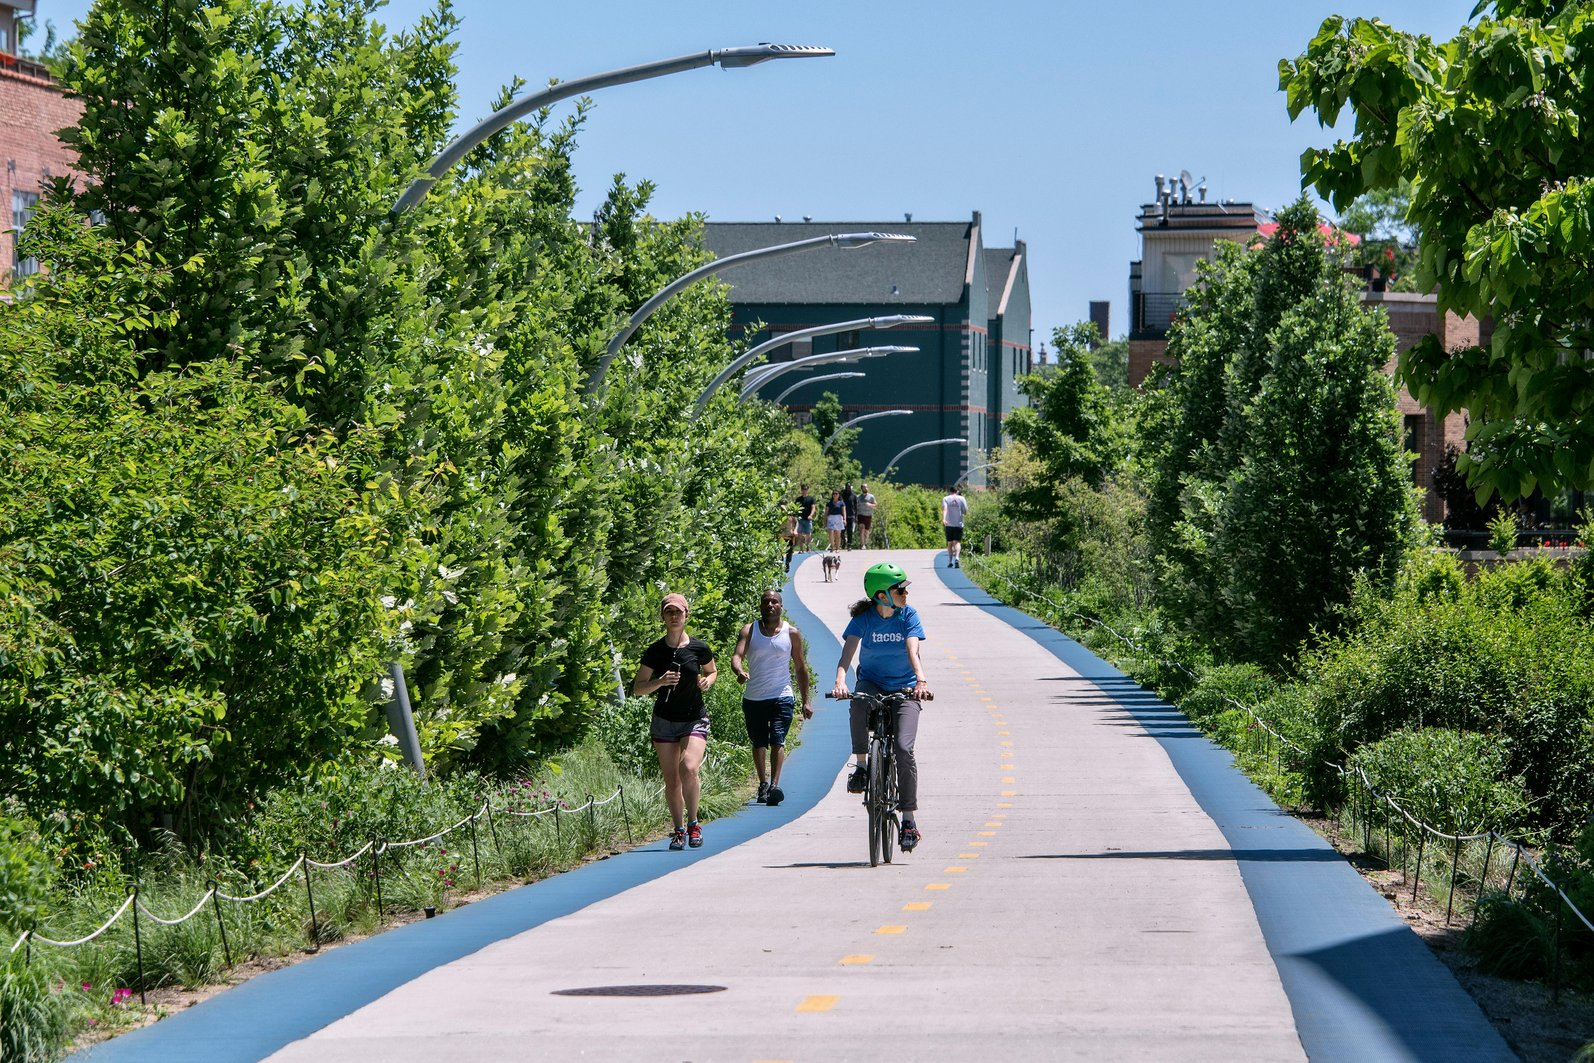 People running and biking on Chicago's 606 Trail